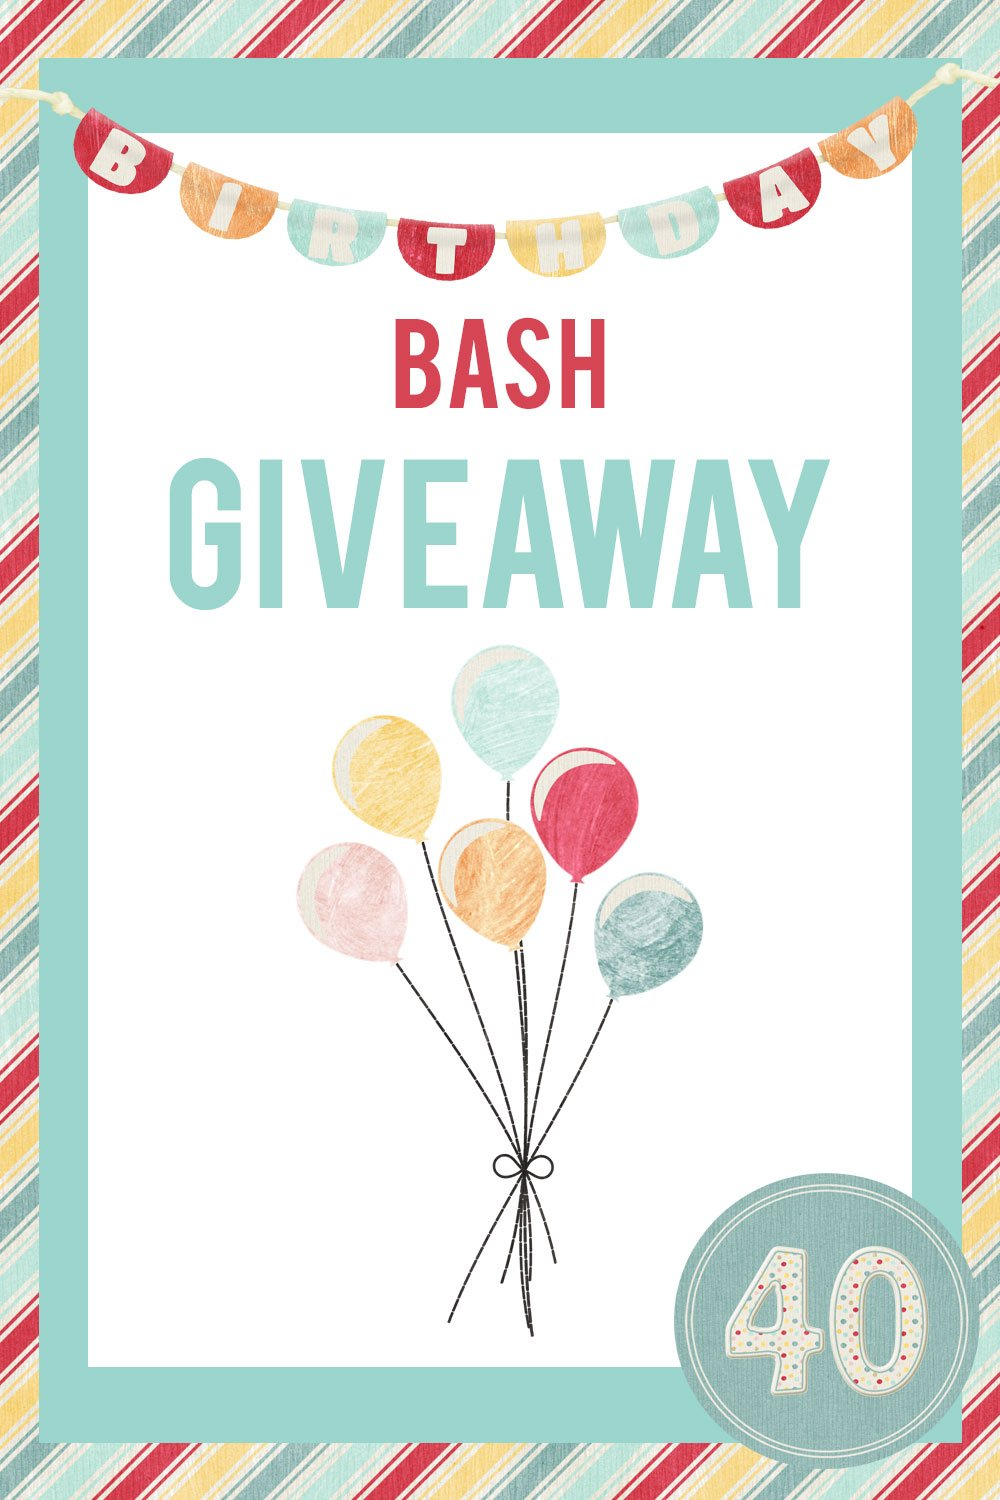 Birthday Bash Giveaway infographic